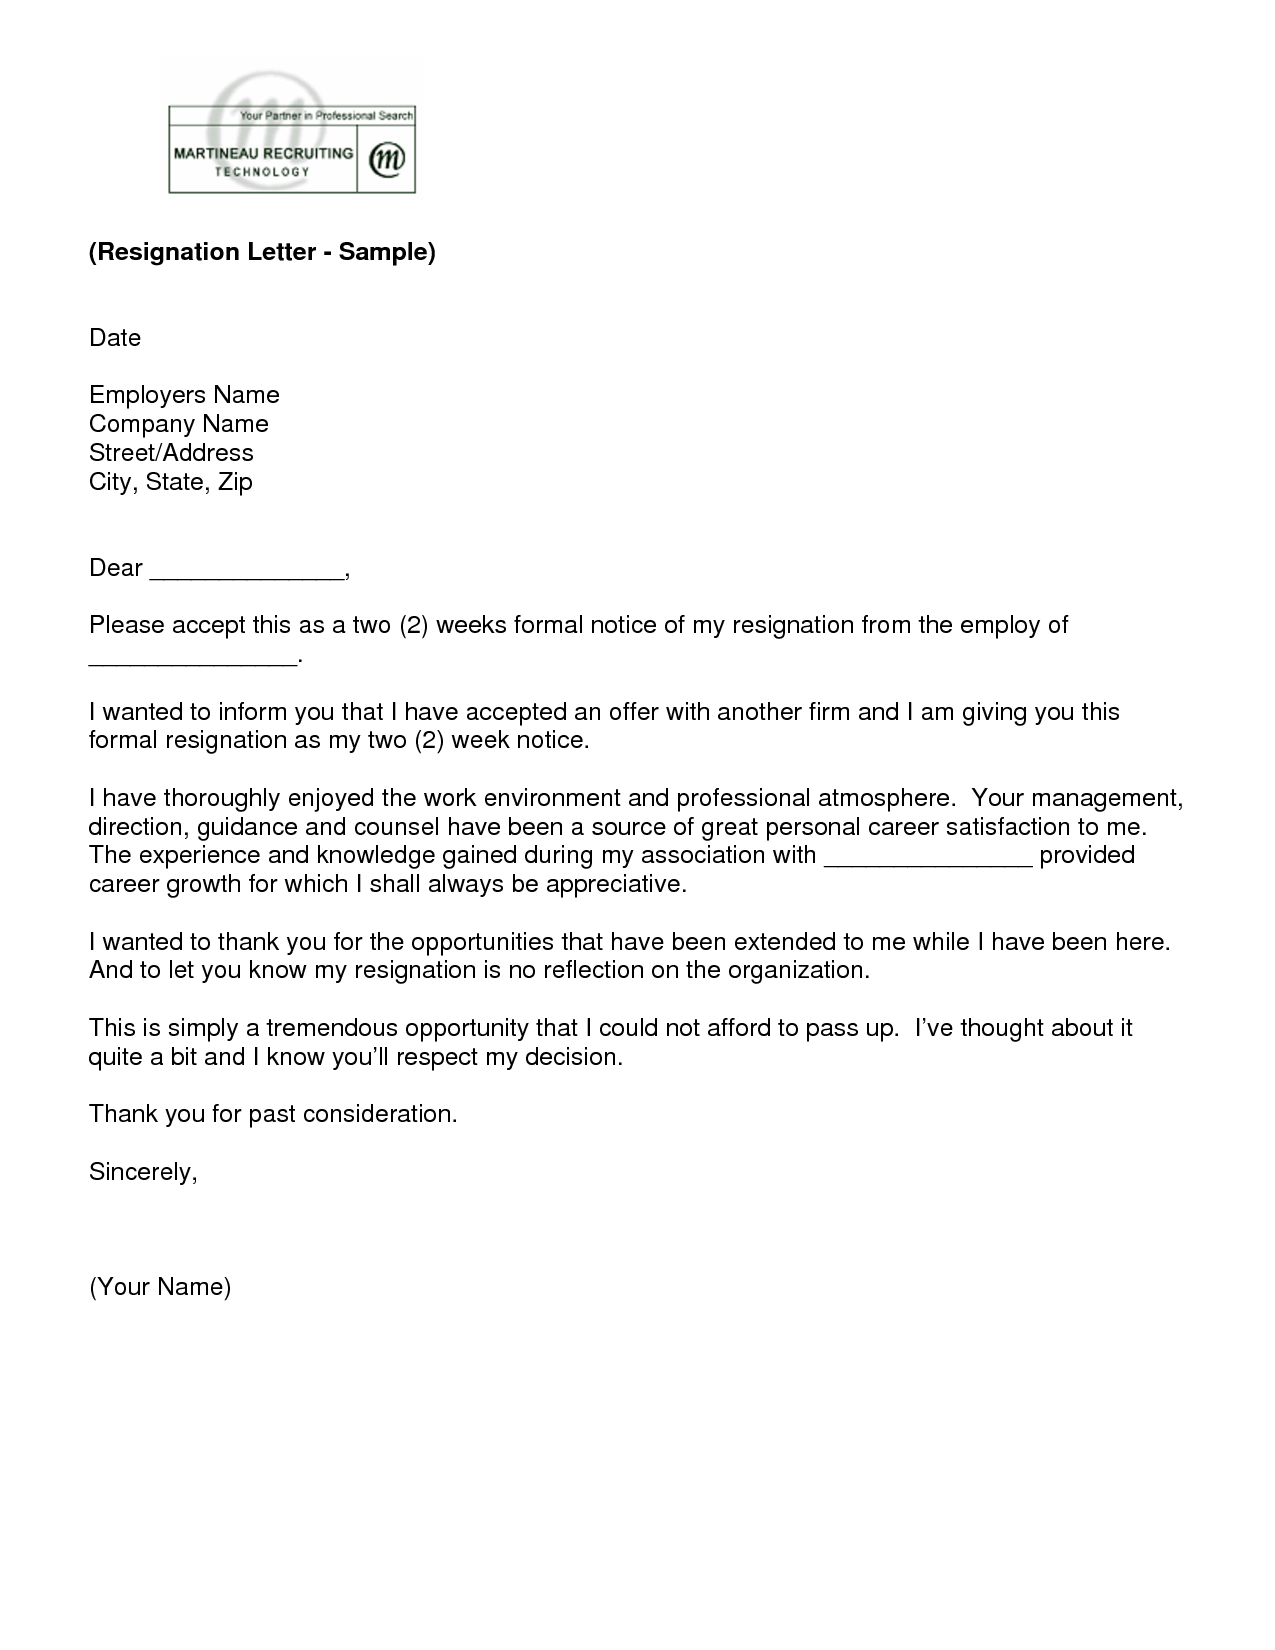 Letter of resignation 2 weeks notice template ew for Written notice letter template